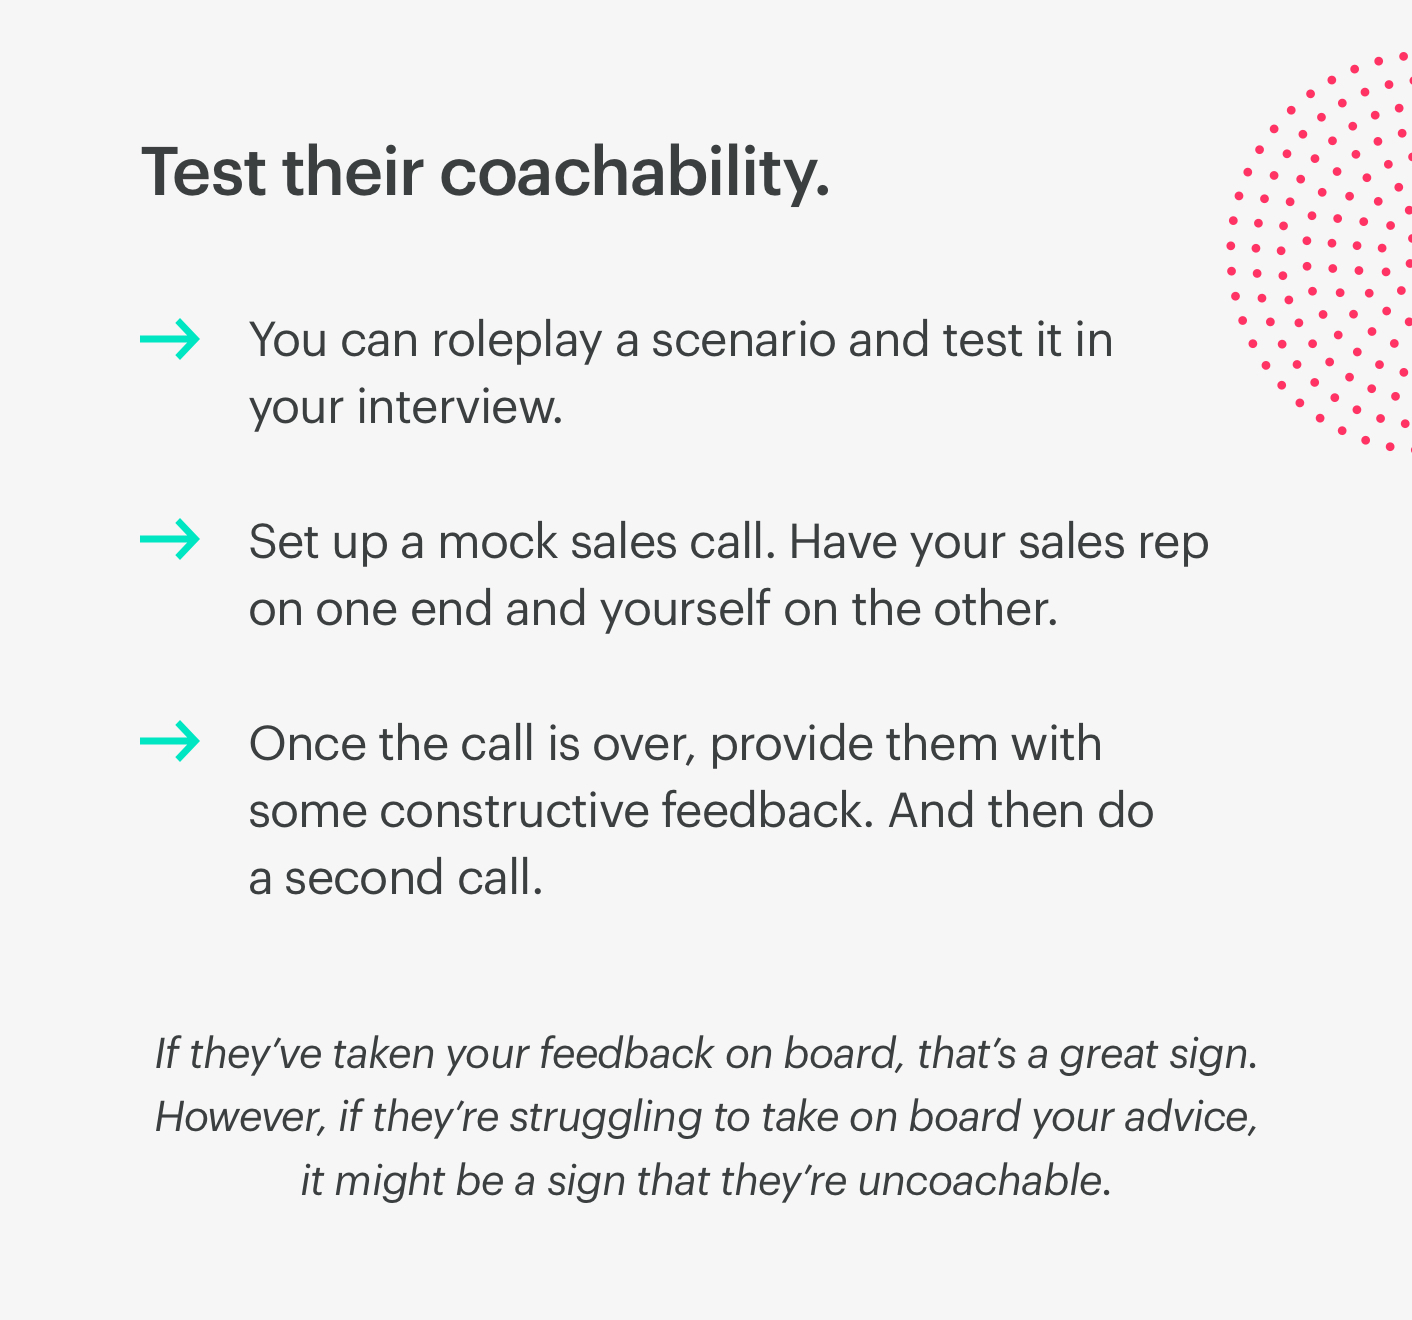 how to test a sales candidate's coachability